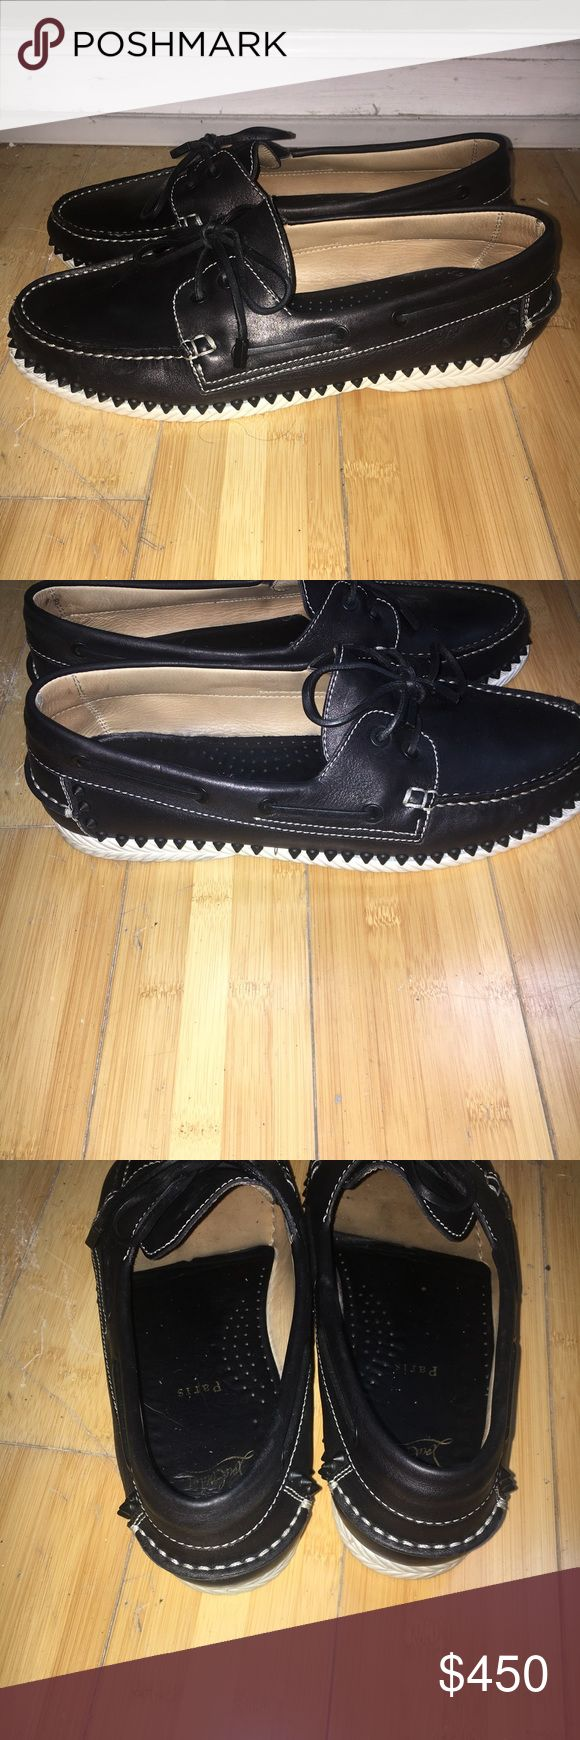 Christian louboutin , sperry boat shoes 100% auth Christian louboutin , sperry boat shoes 100% authentic in great pre-loved condition. Worn a hand full of times . CL 44 1/2 = us 11.5. Shoes only Christian Louboutin Shoes Boat Shoes